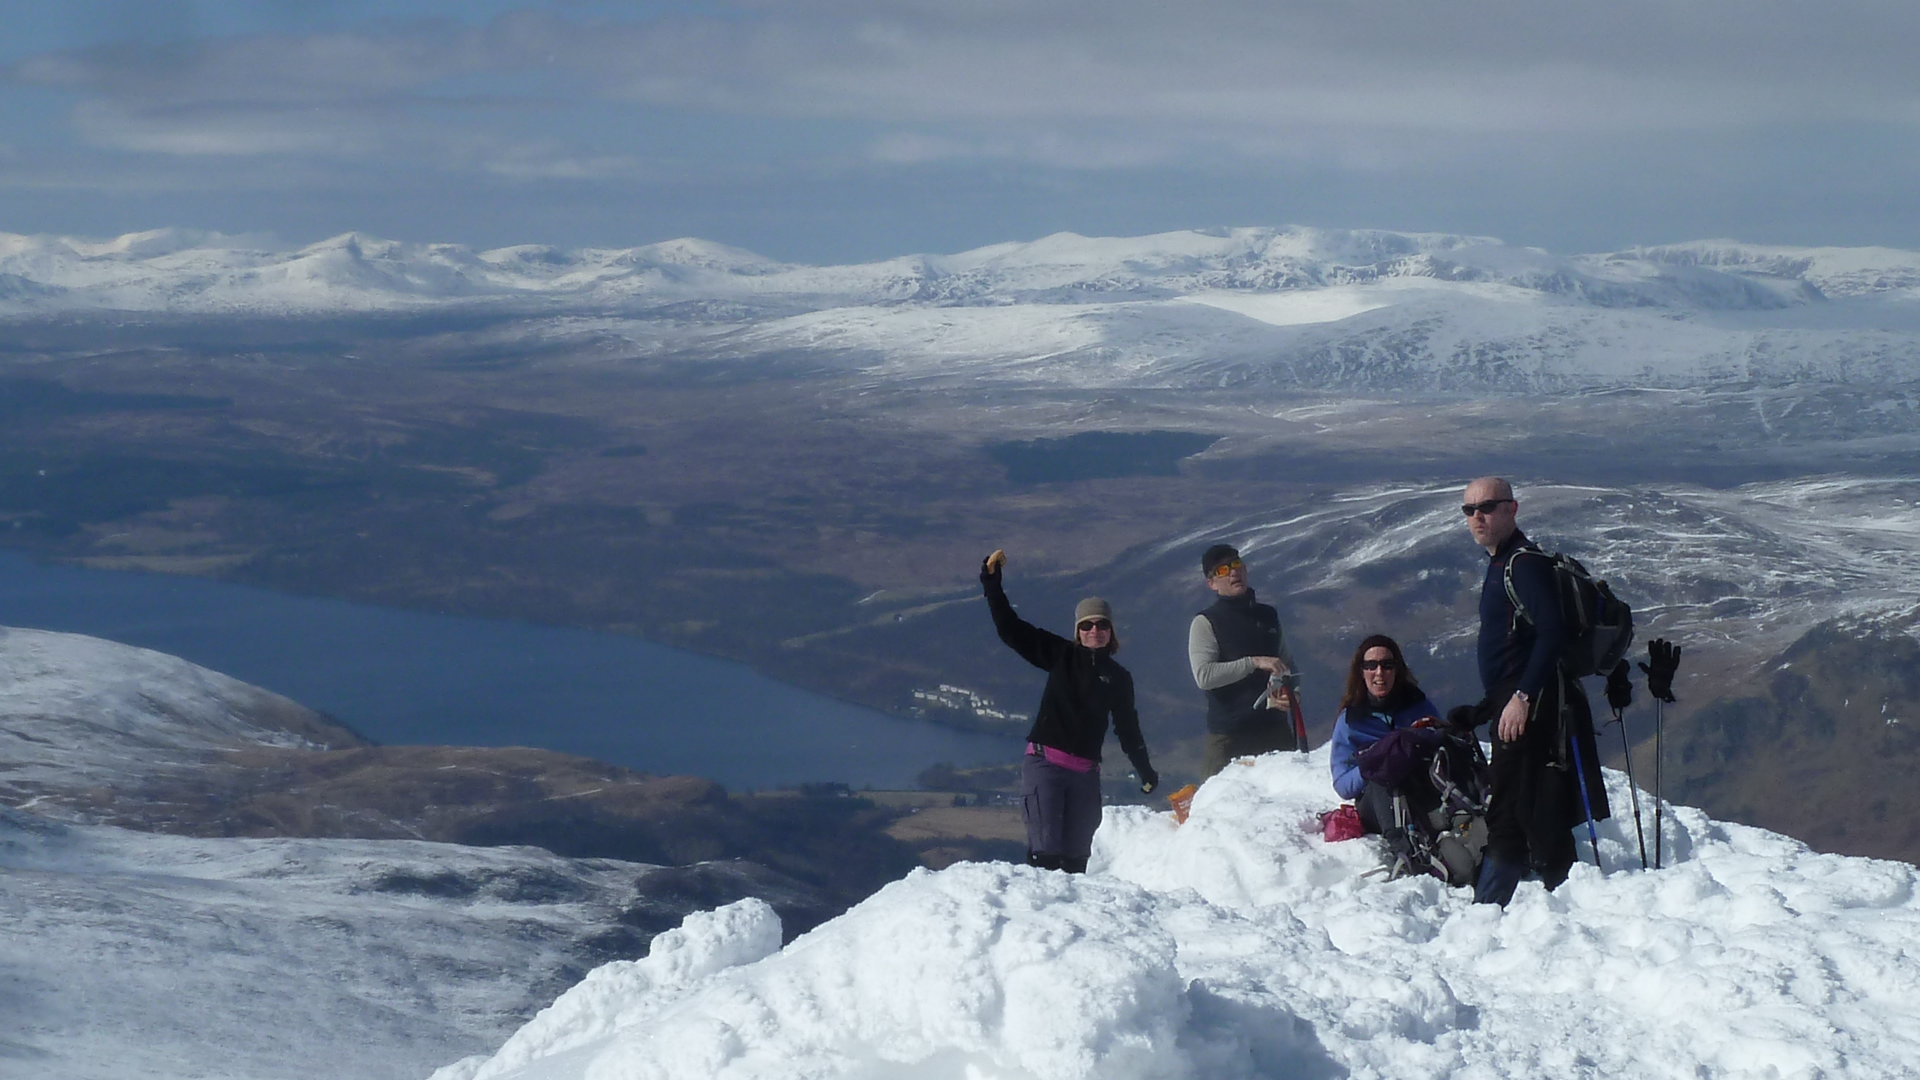 On summit of Schiehallion